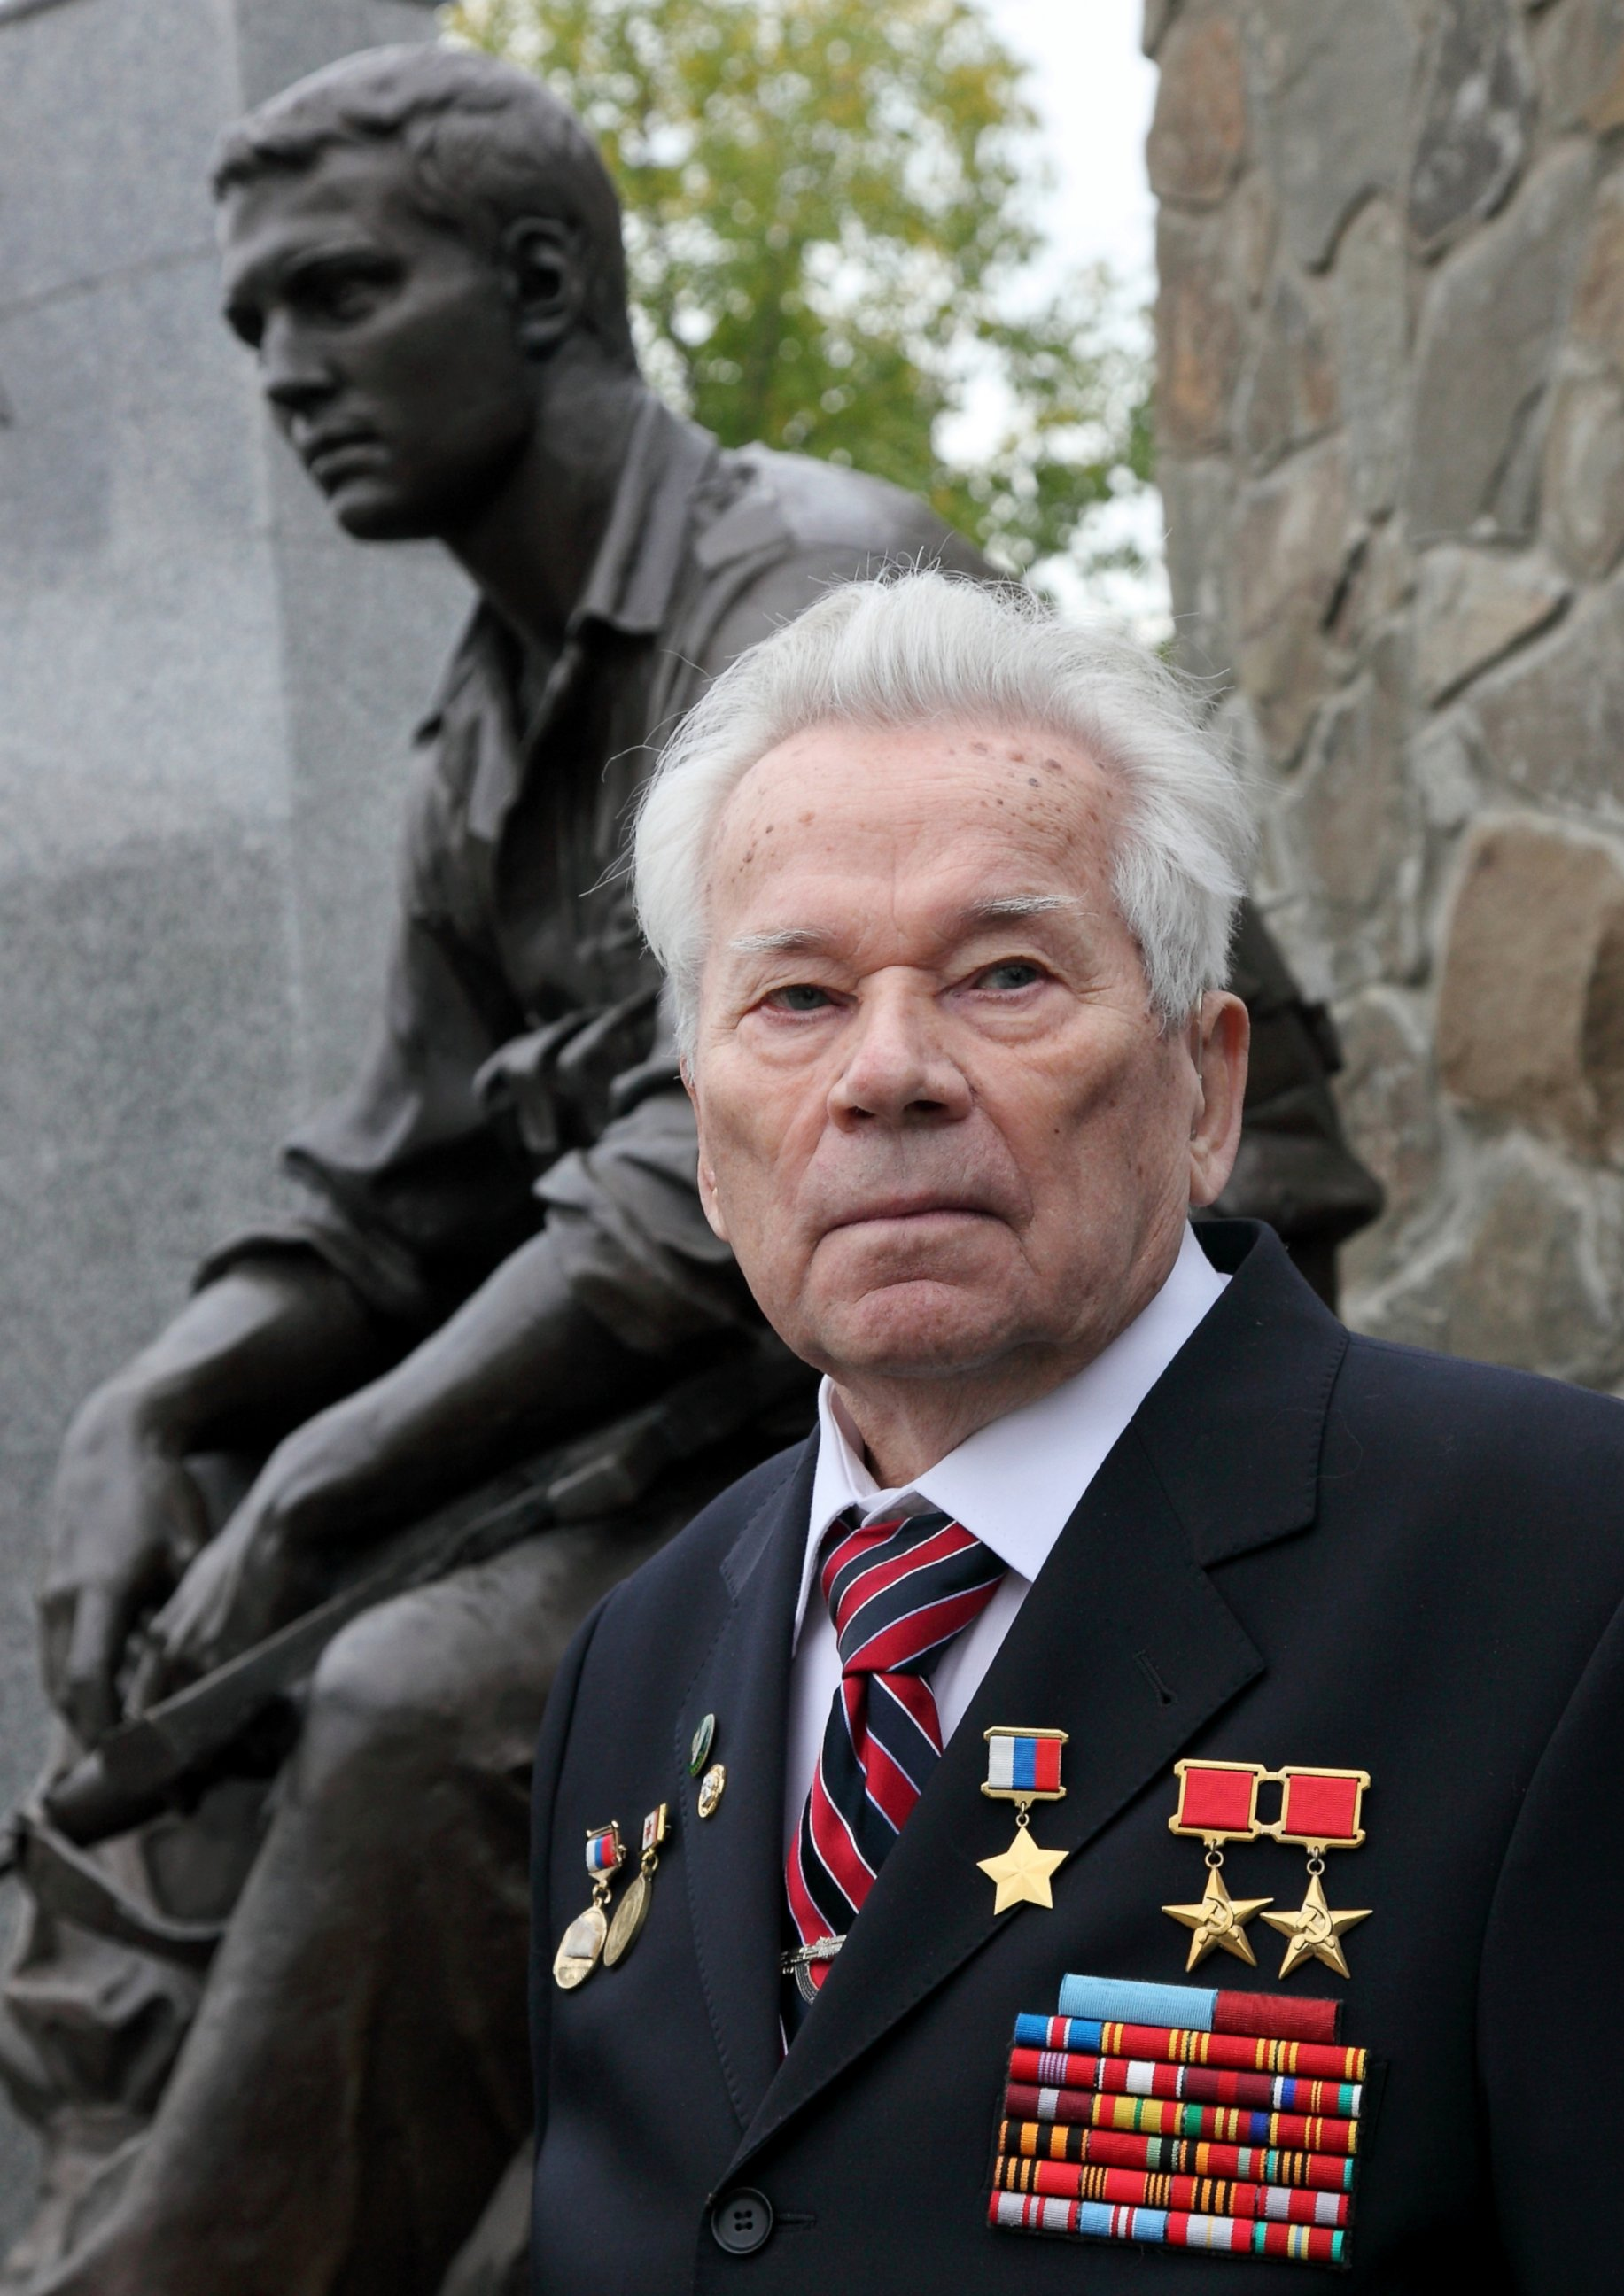 GTY mikhail kalashnikov jef 140113 Am I Guilty in the Deaths of Millions? AK 47 Inventor Asks in Mournful Letter